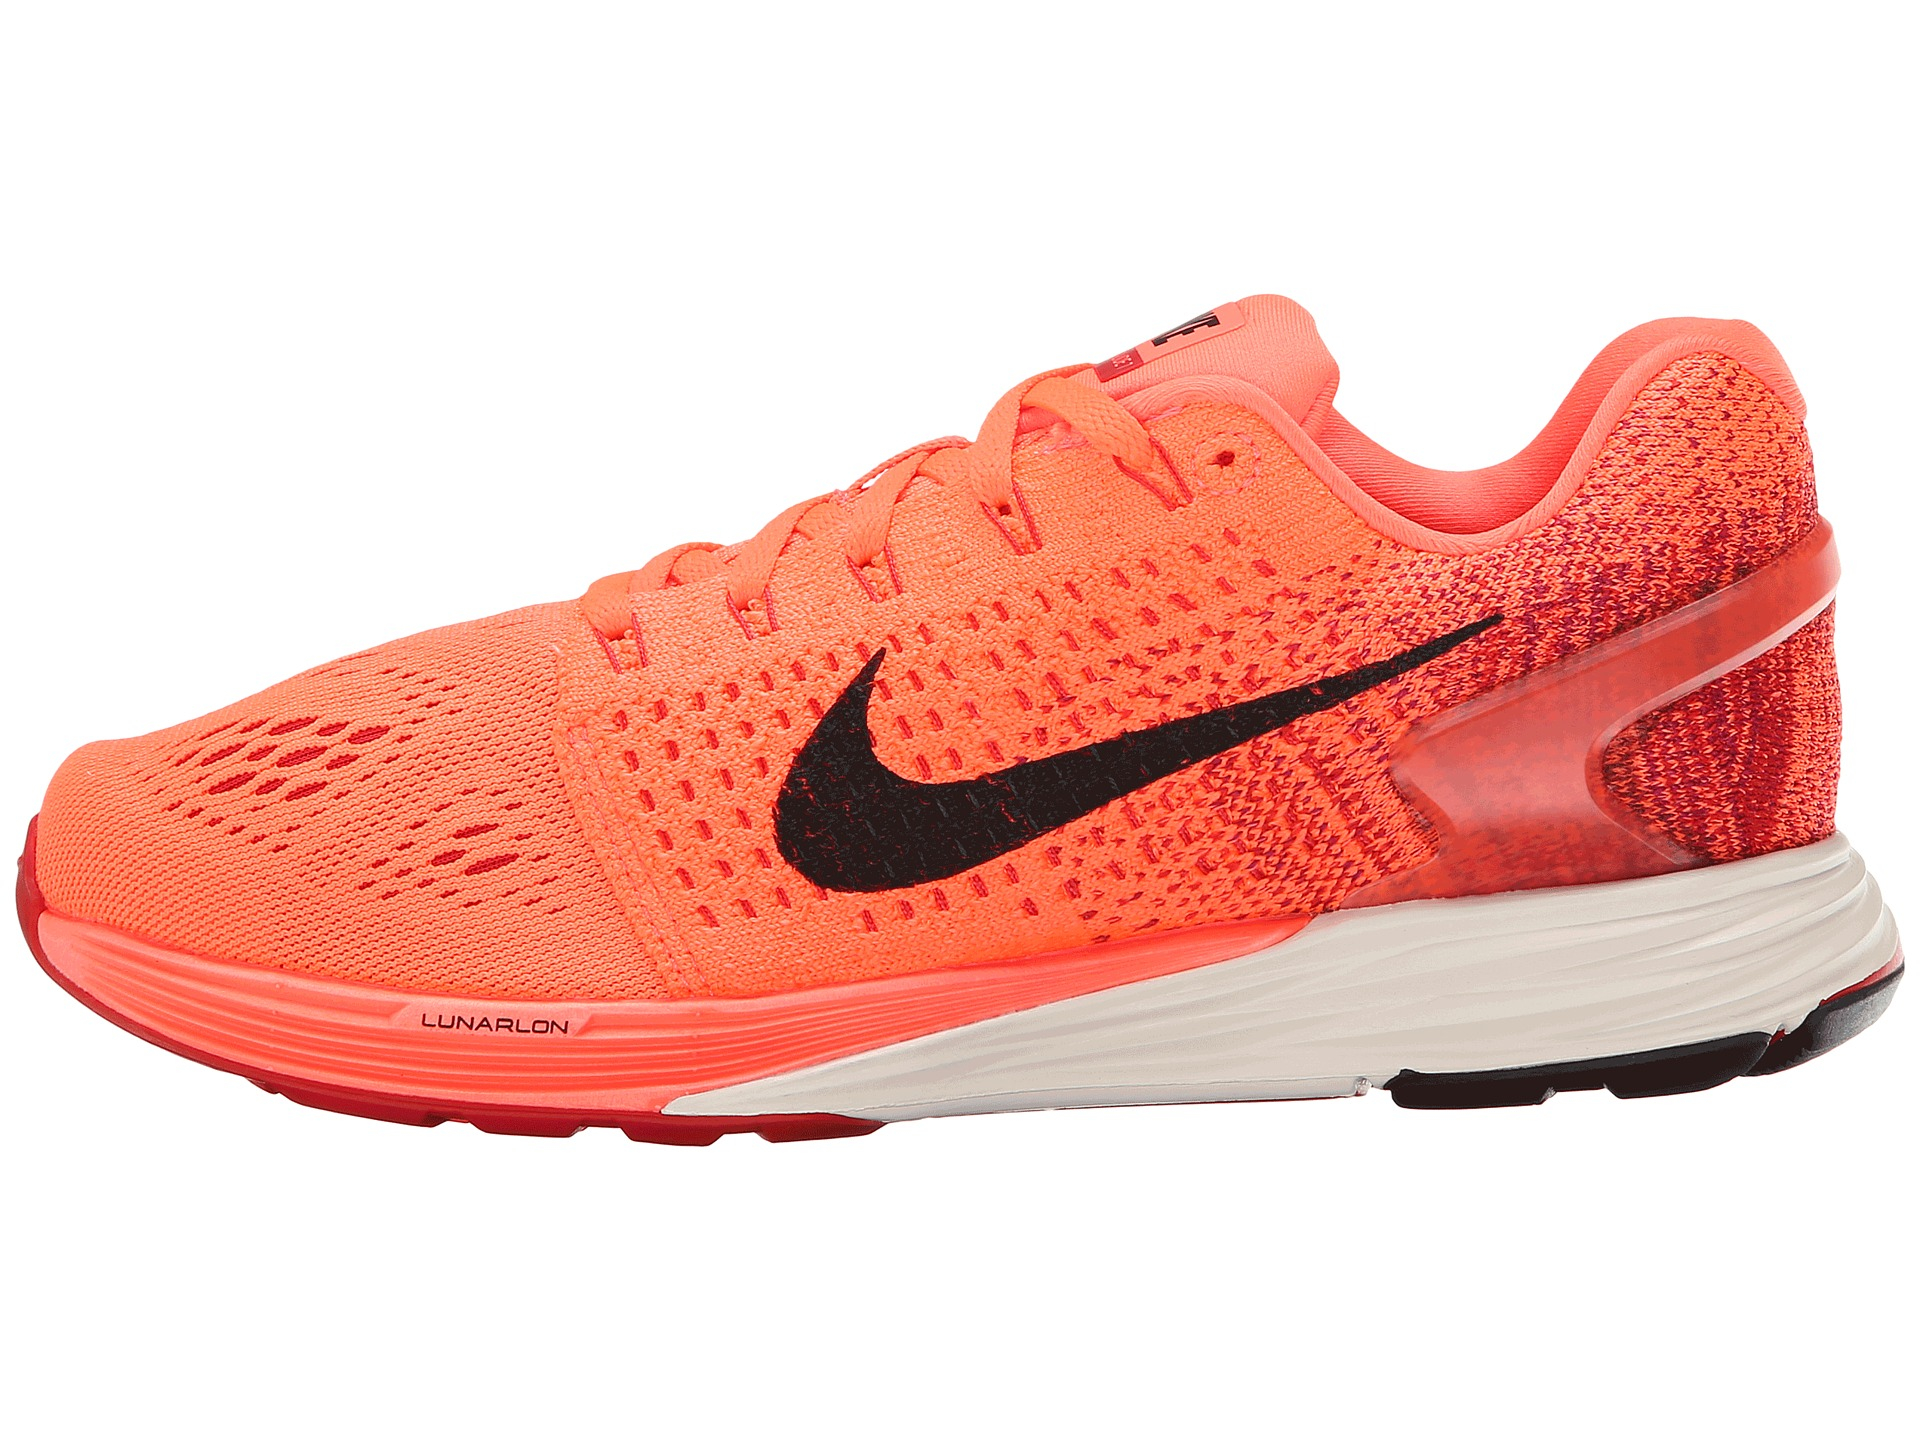 separation shoes 262f2 f312e new style lyst nike lunarglide 7 in orange for men 3a796 5155a